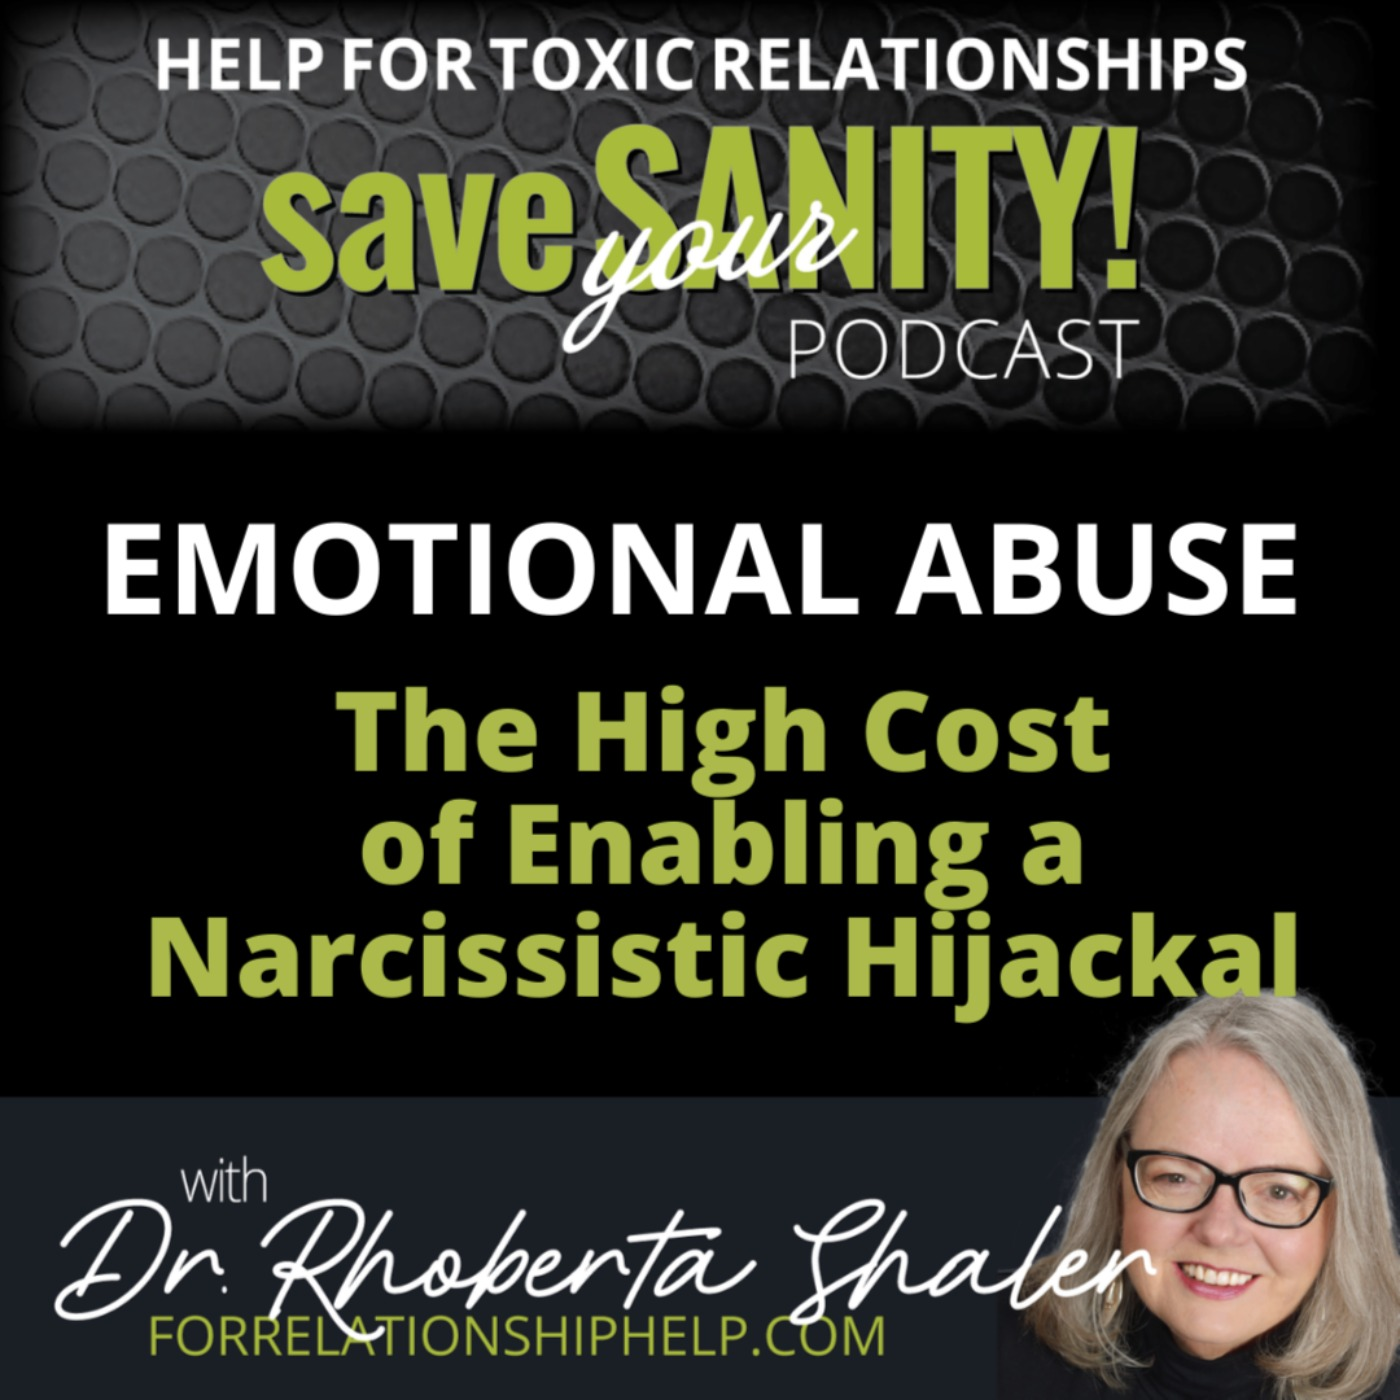 EMOTIONAL ABUSE: The High Cost of Enabling a Narcissistic Hijackal